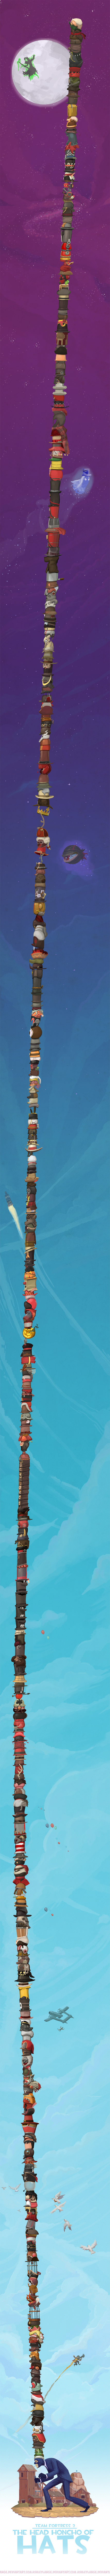 Every Hat In TF2 by ashlelang